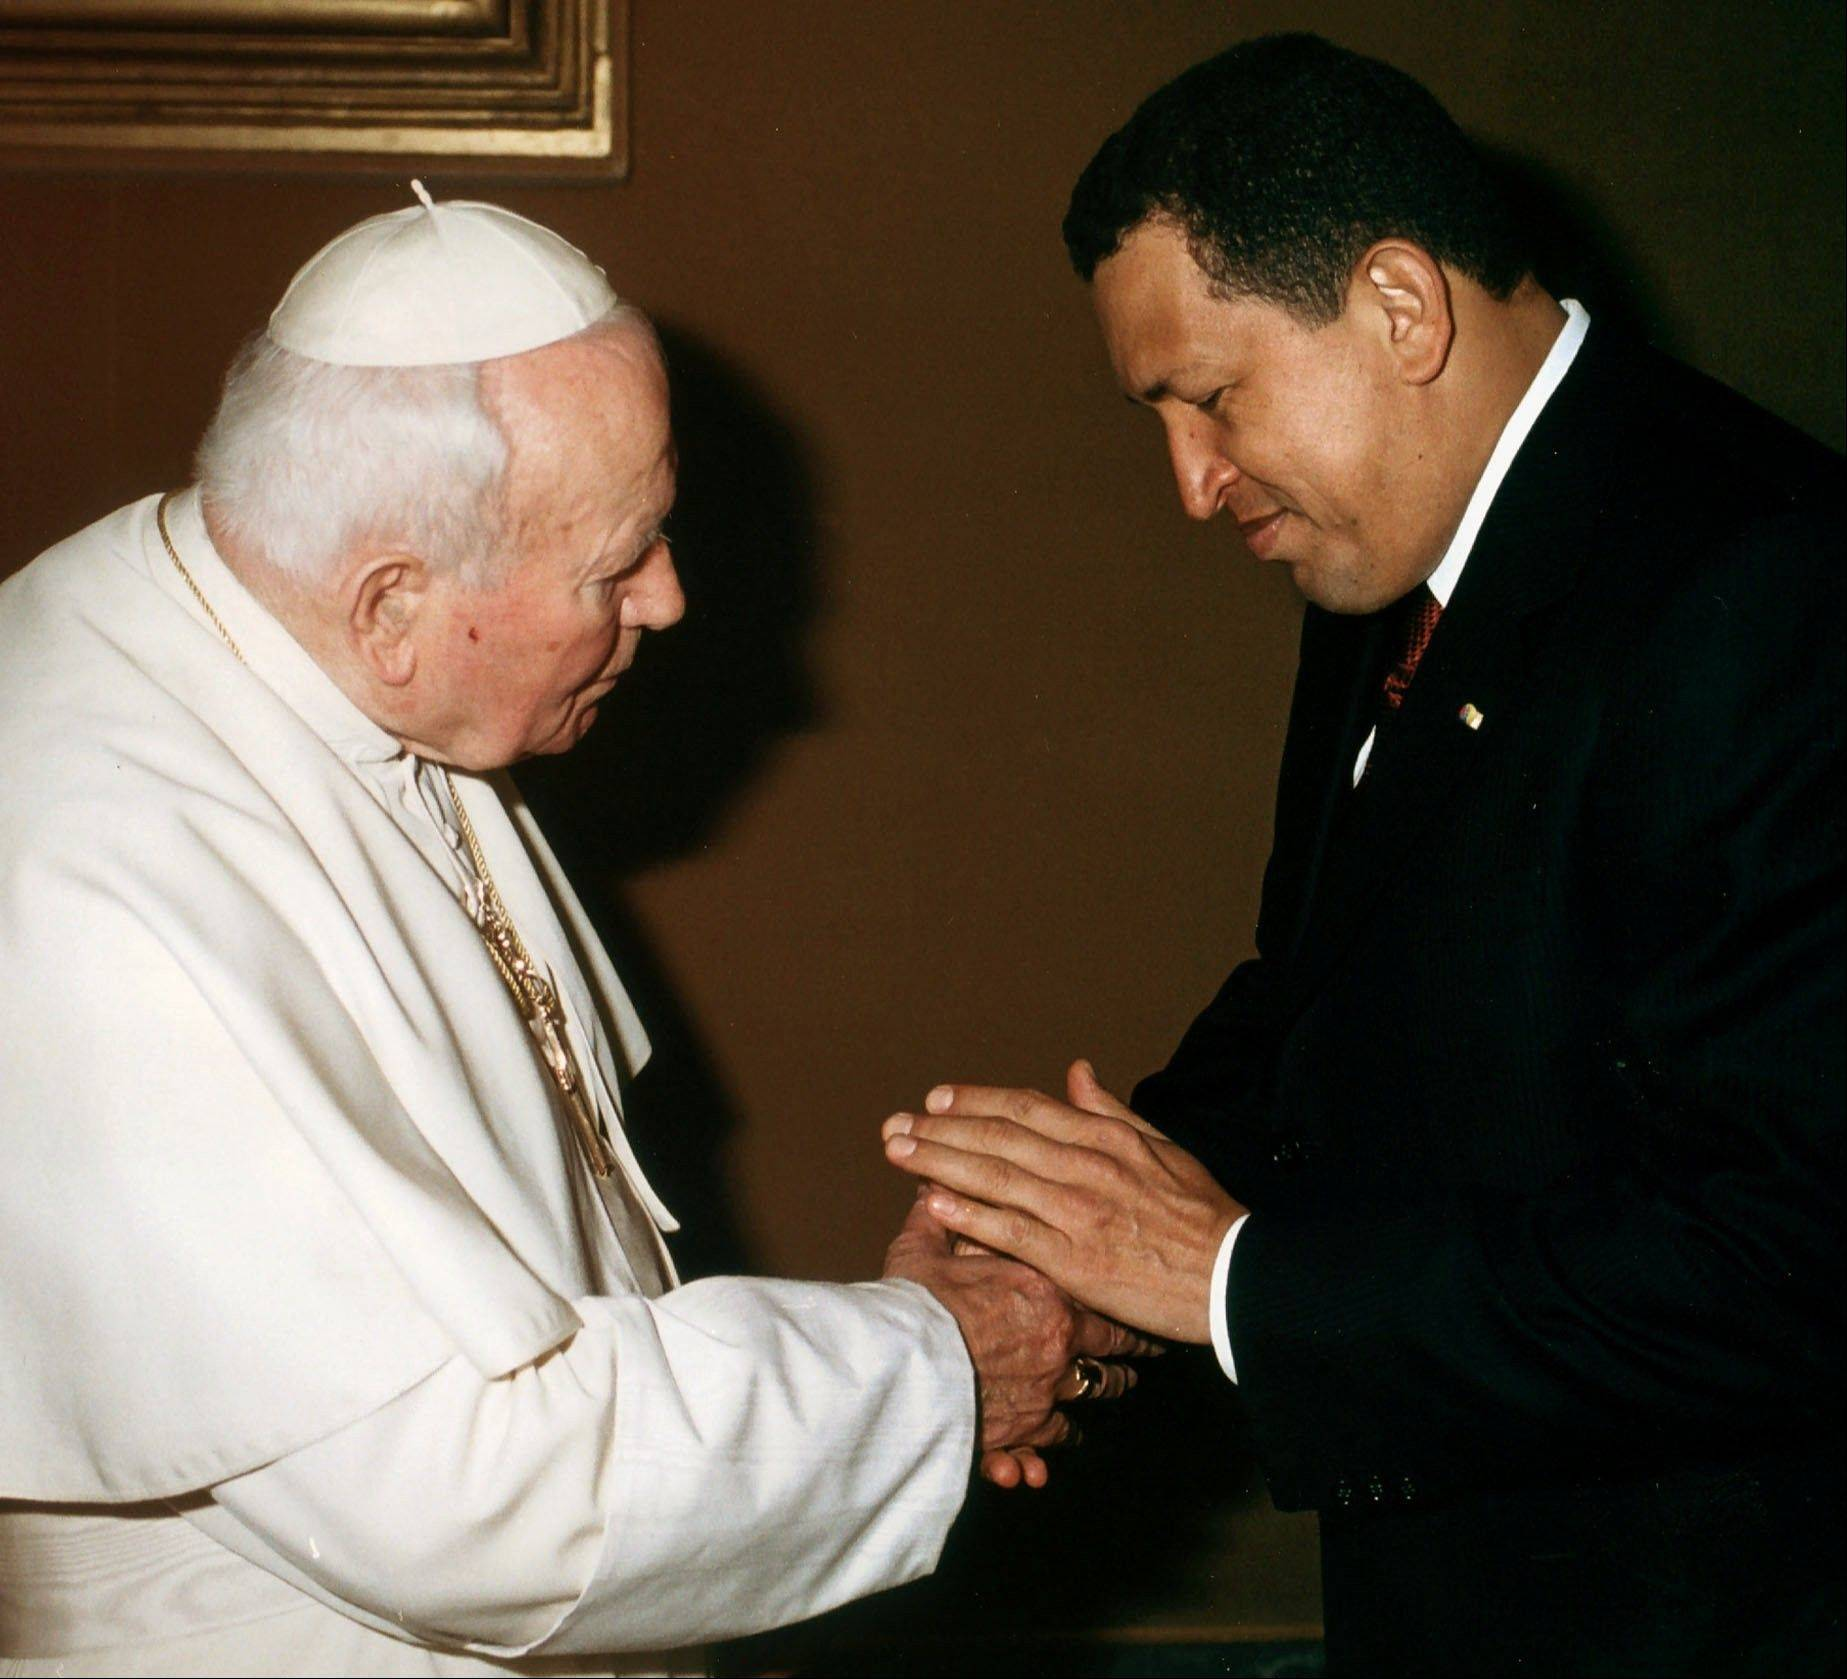 In this Oct. 12, 2001 file photo released by the Vatican, Pope John Paul II shakes hands with Venezuela's President Hugo Chavez during a private audience at the Vatican City .